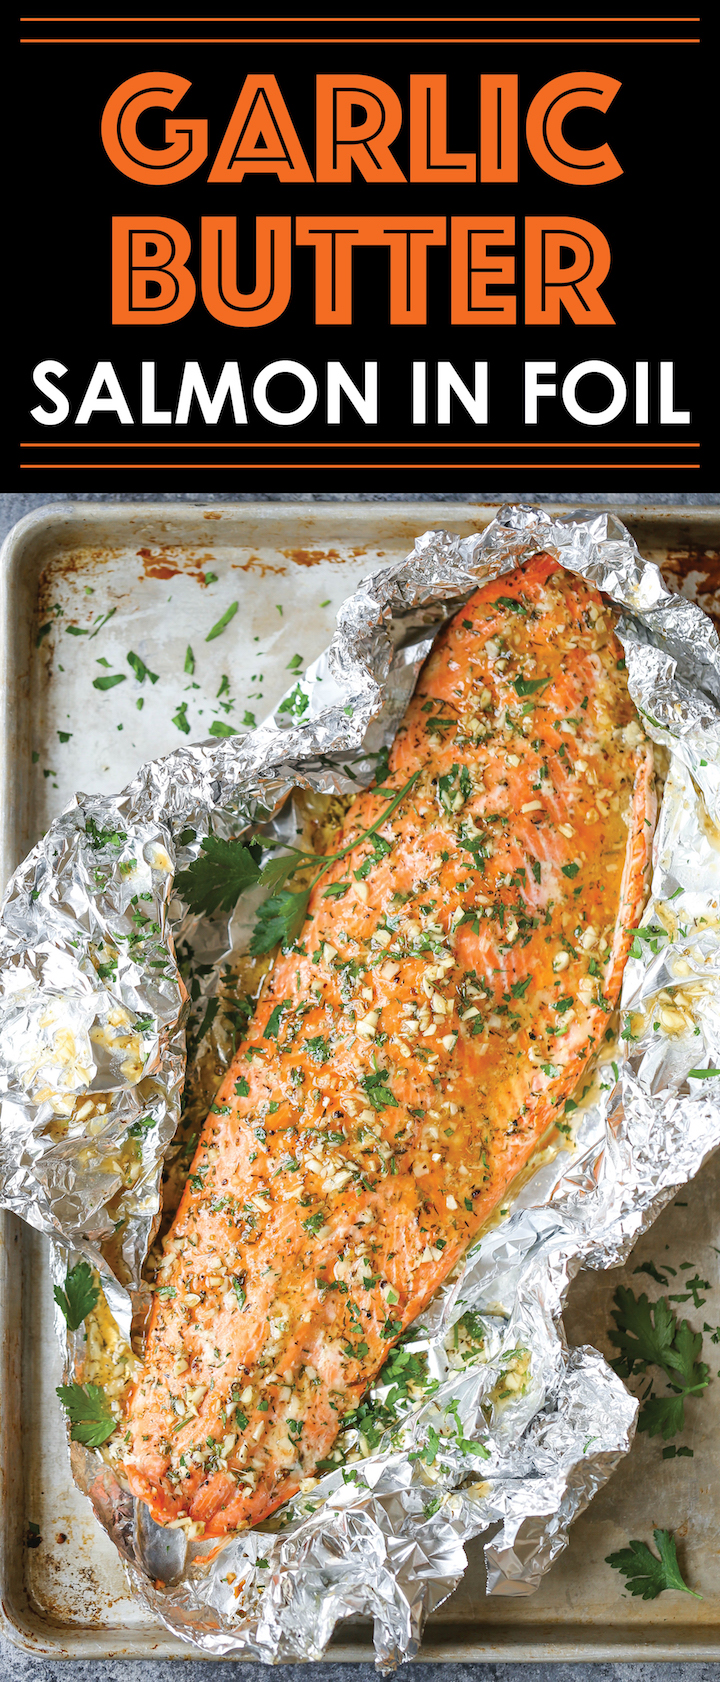 Garlic Butter Salmon in Foil - Easiest tin foil dinner! Simply bake right in your foil packet. Quick, easy, and effortless with seriously zero clean-up!!